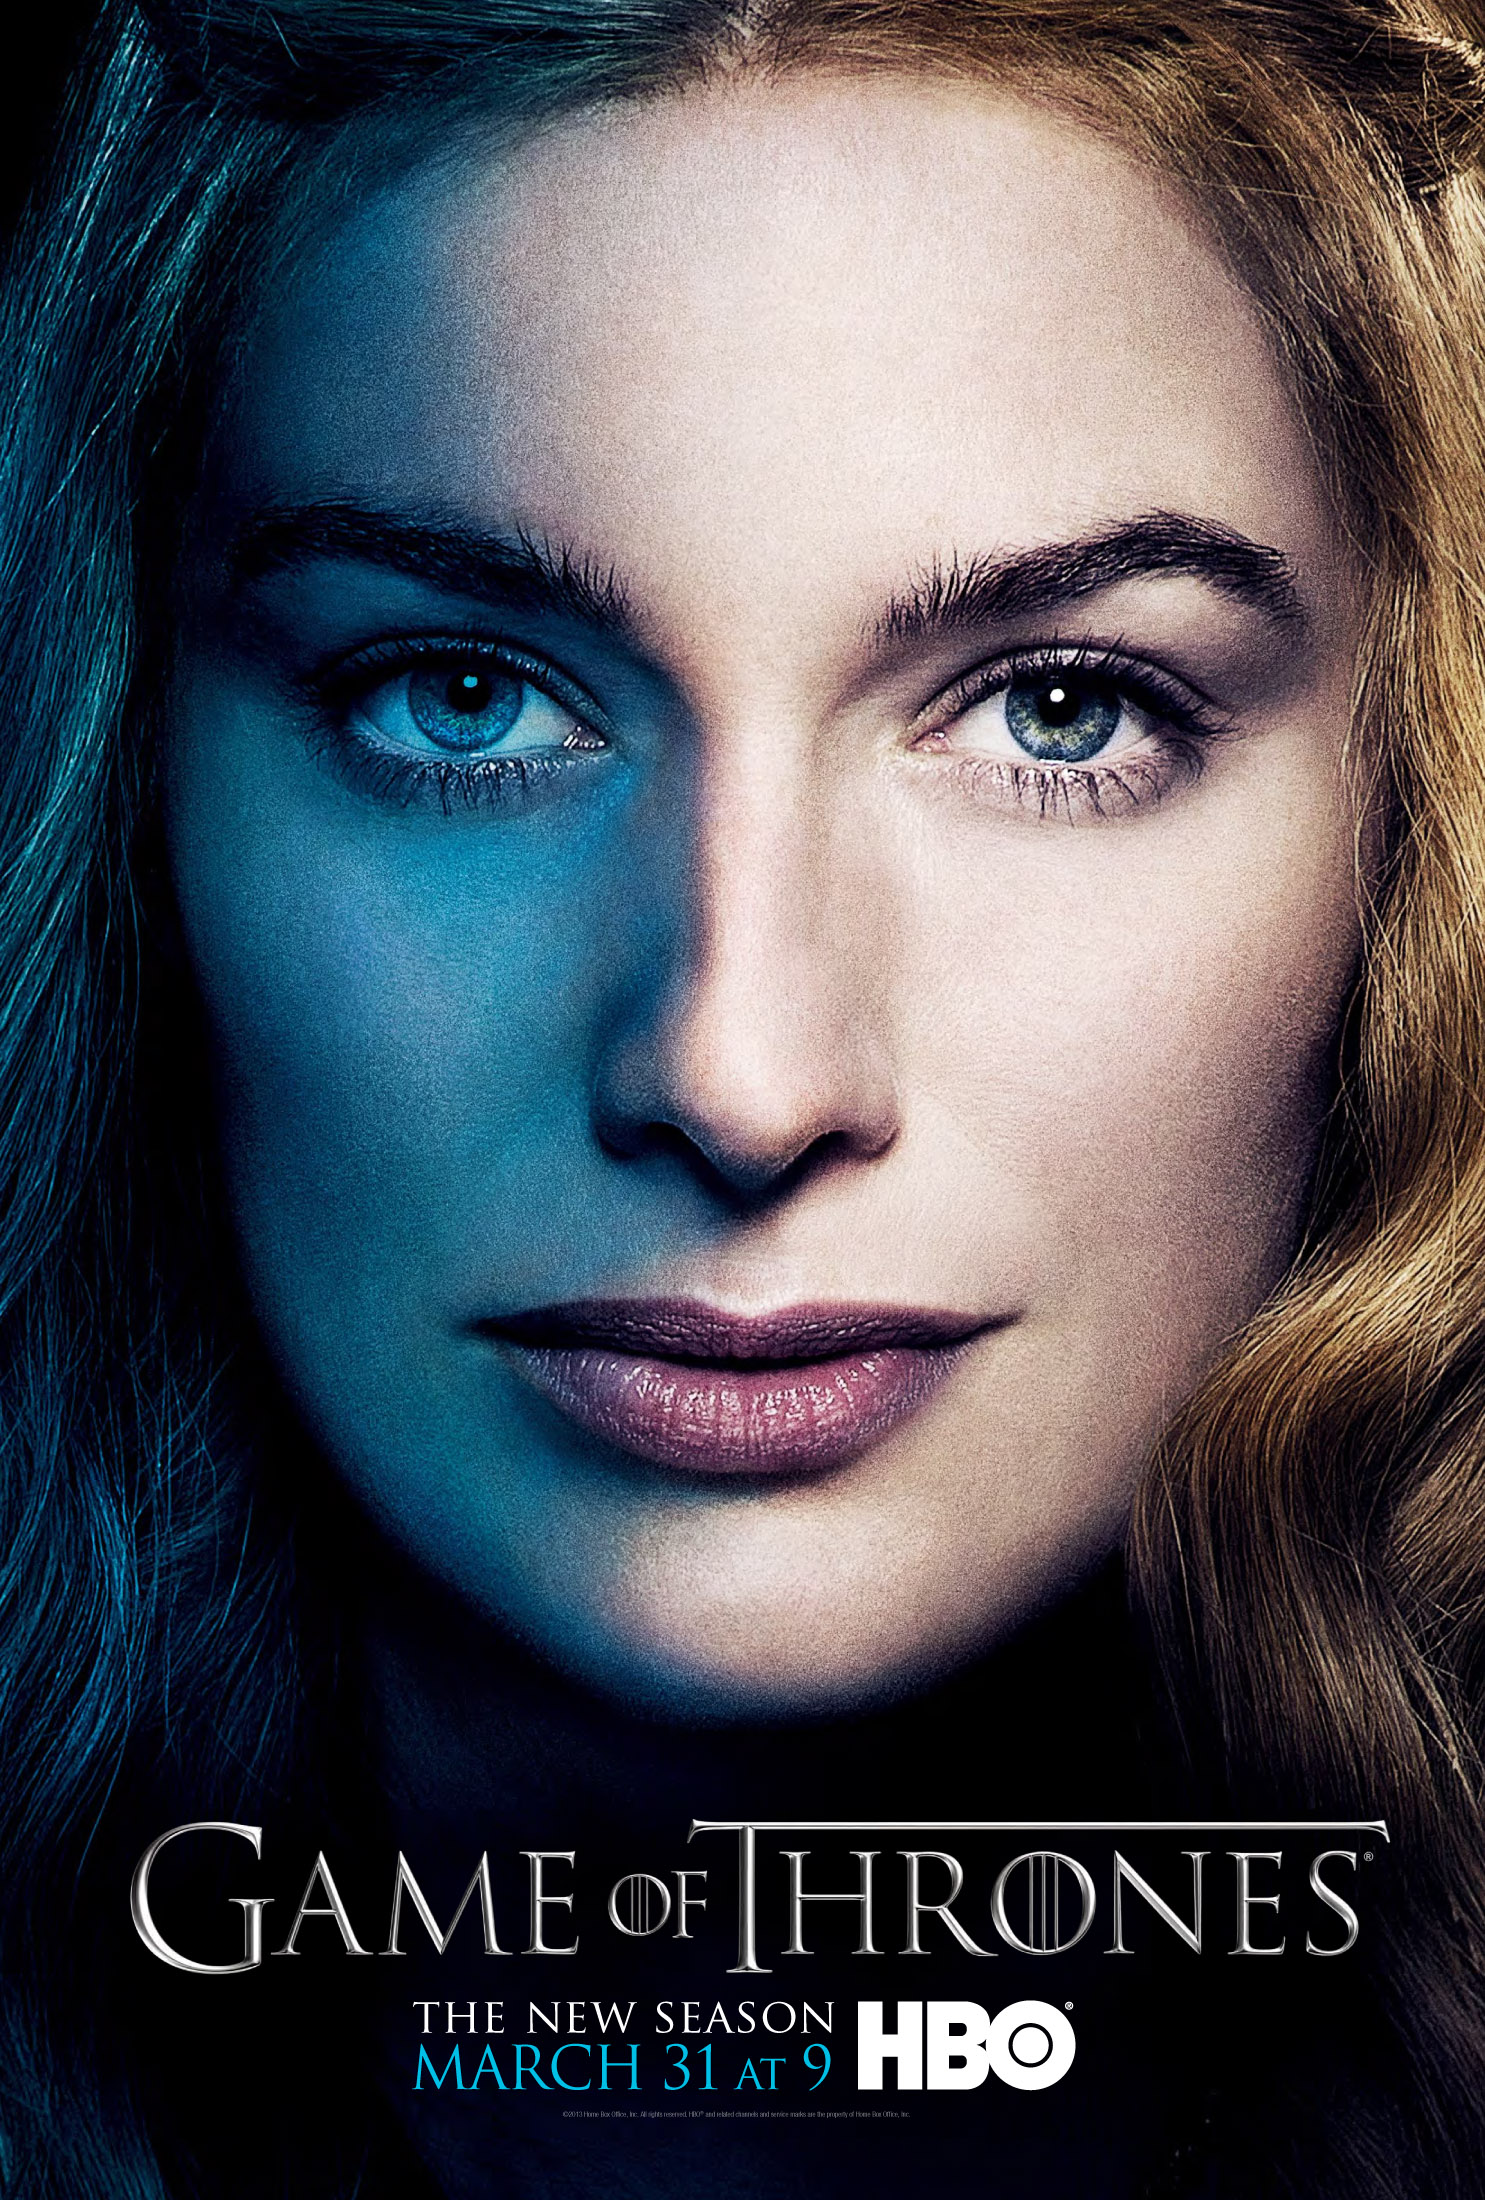 Cersei Lannister Game of Thrones season three poster.